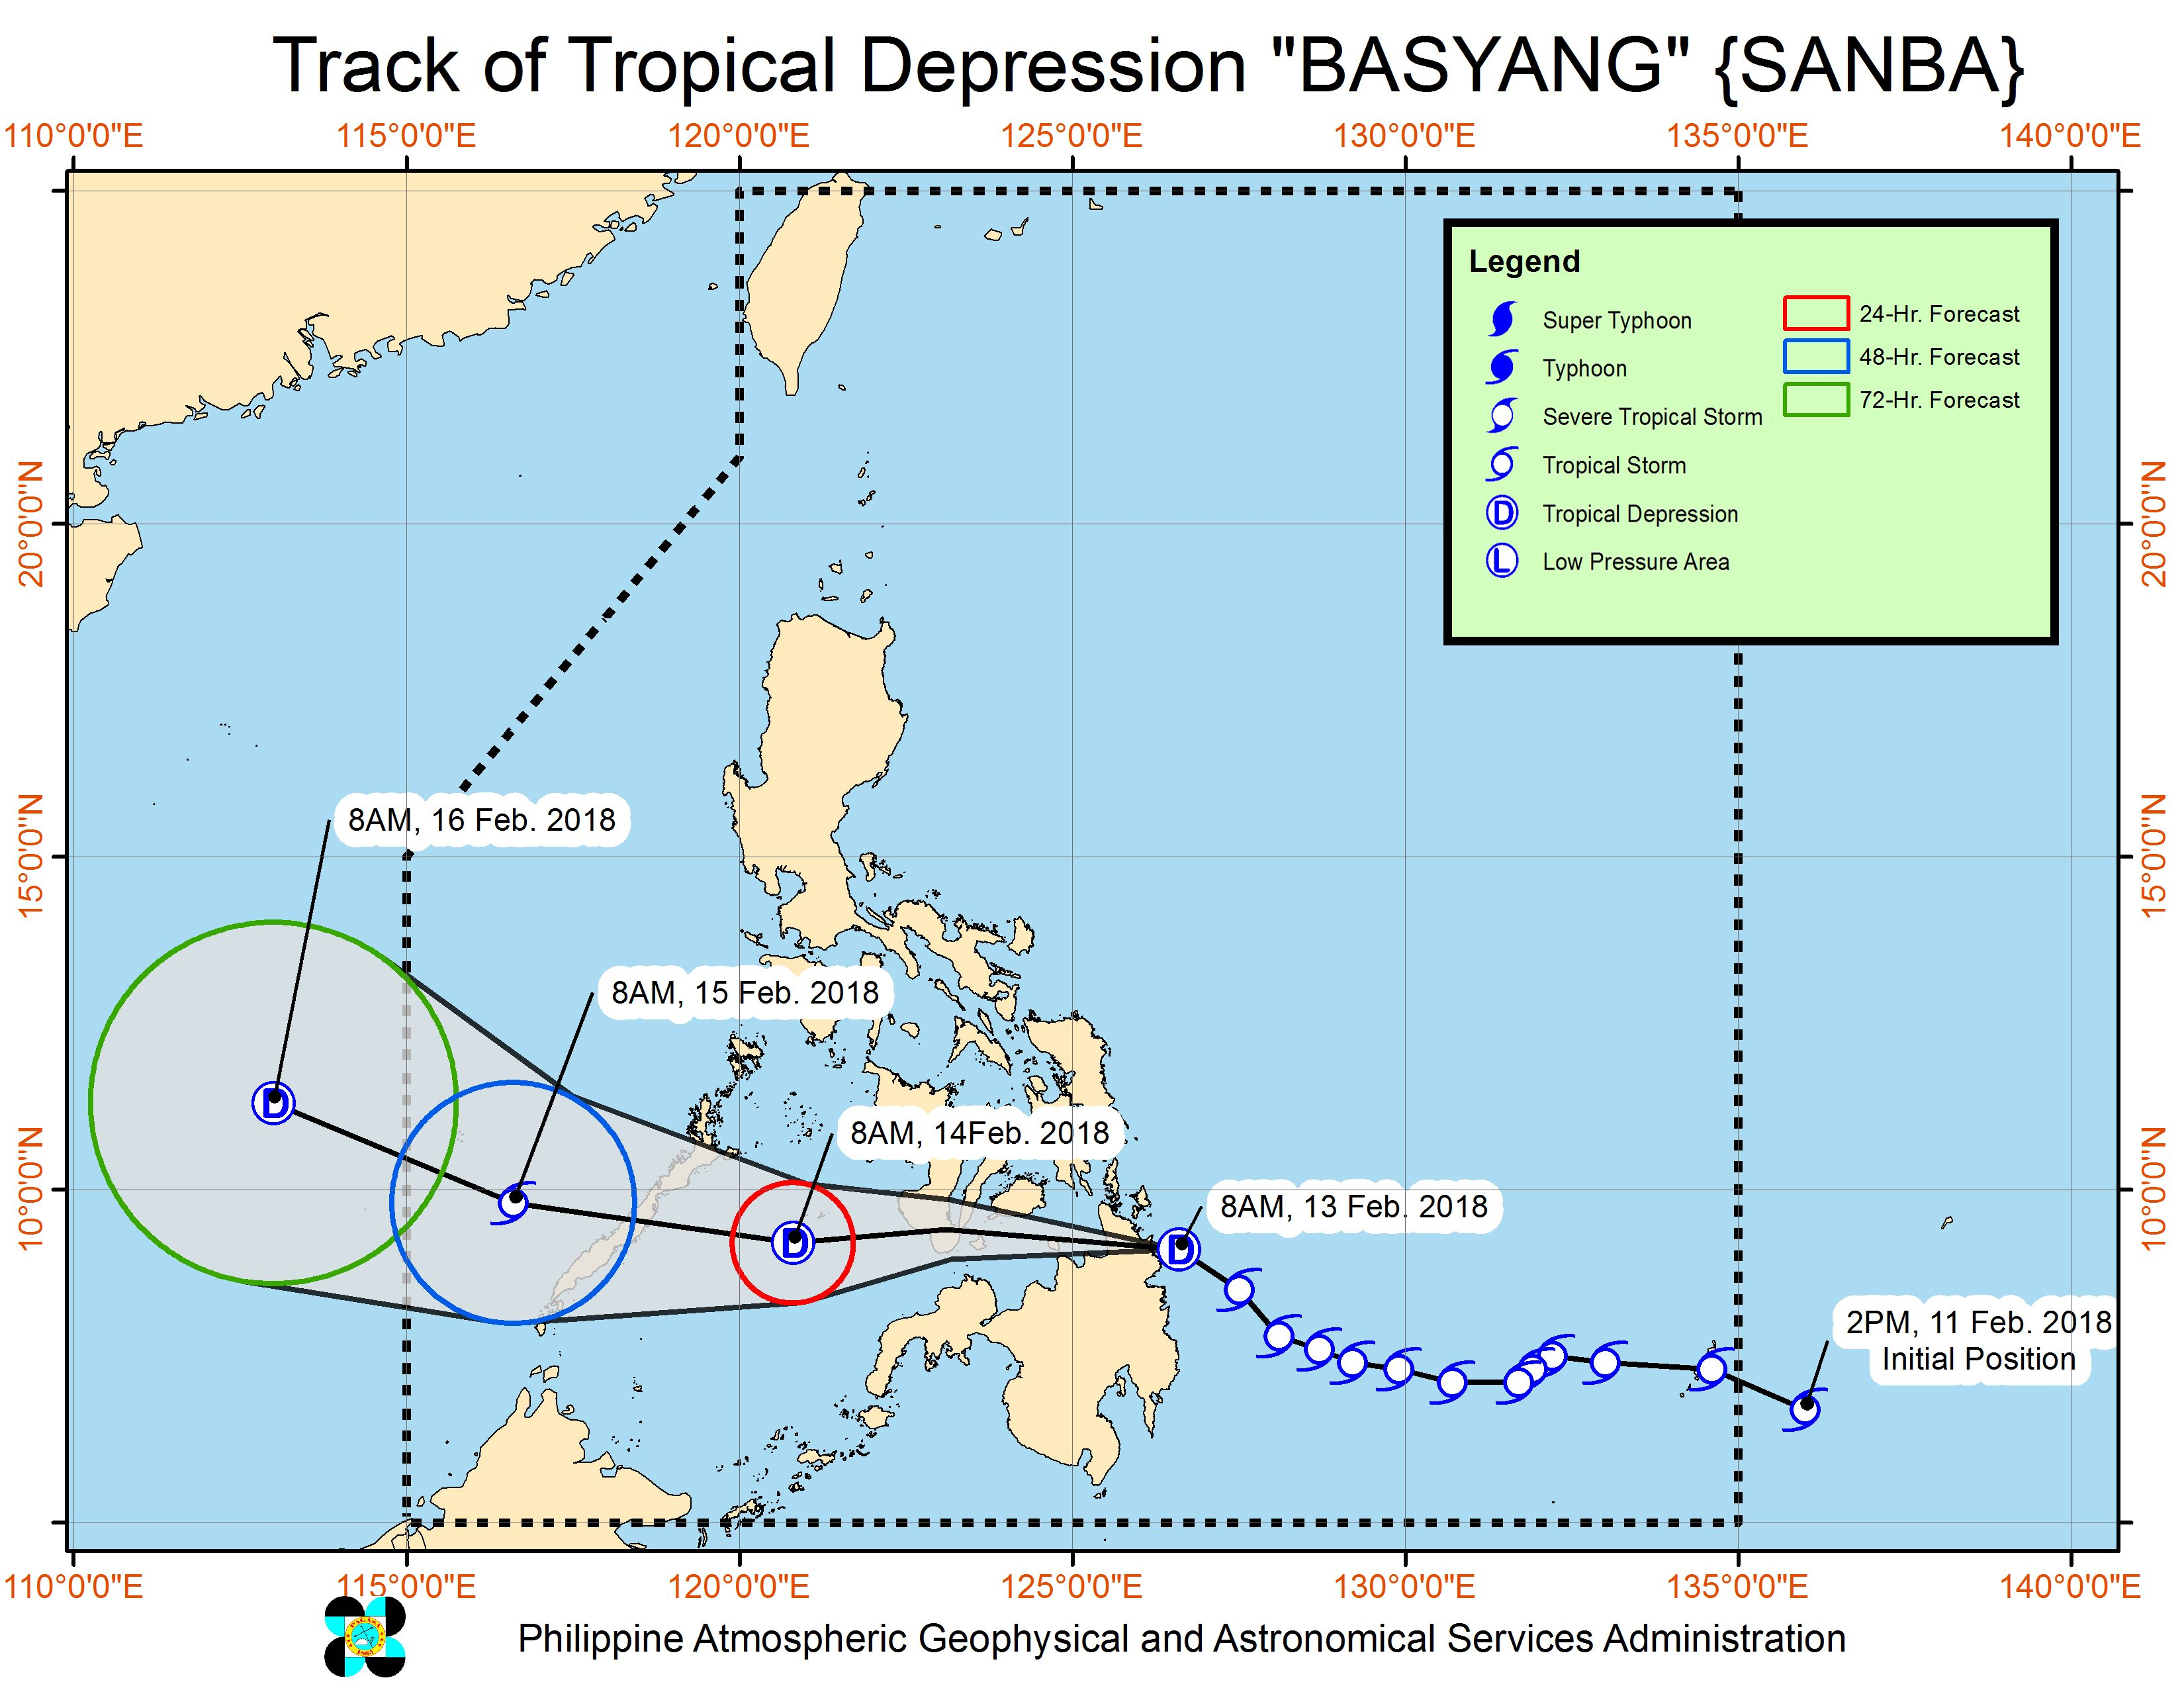 Basyang weakens into tropical depression after landfall